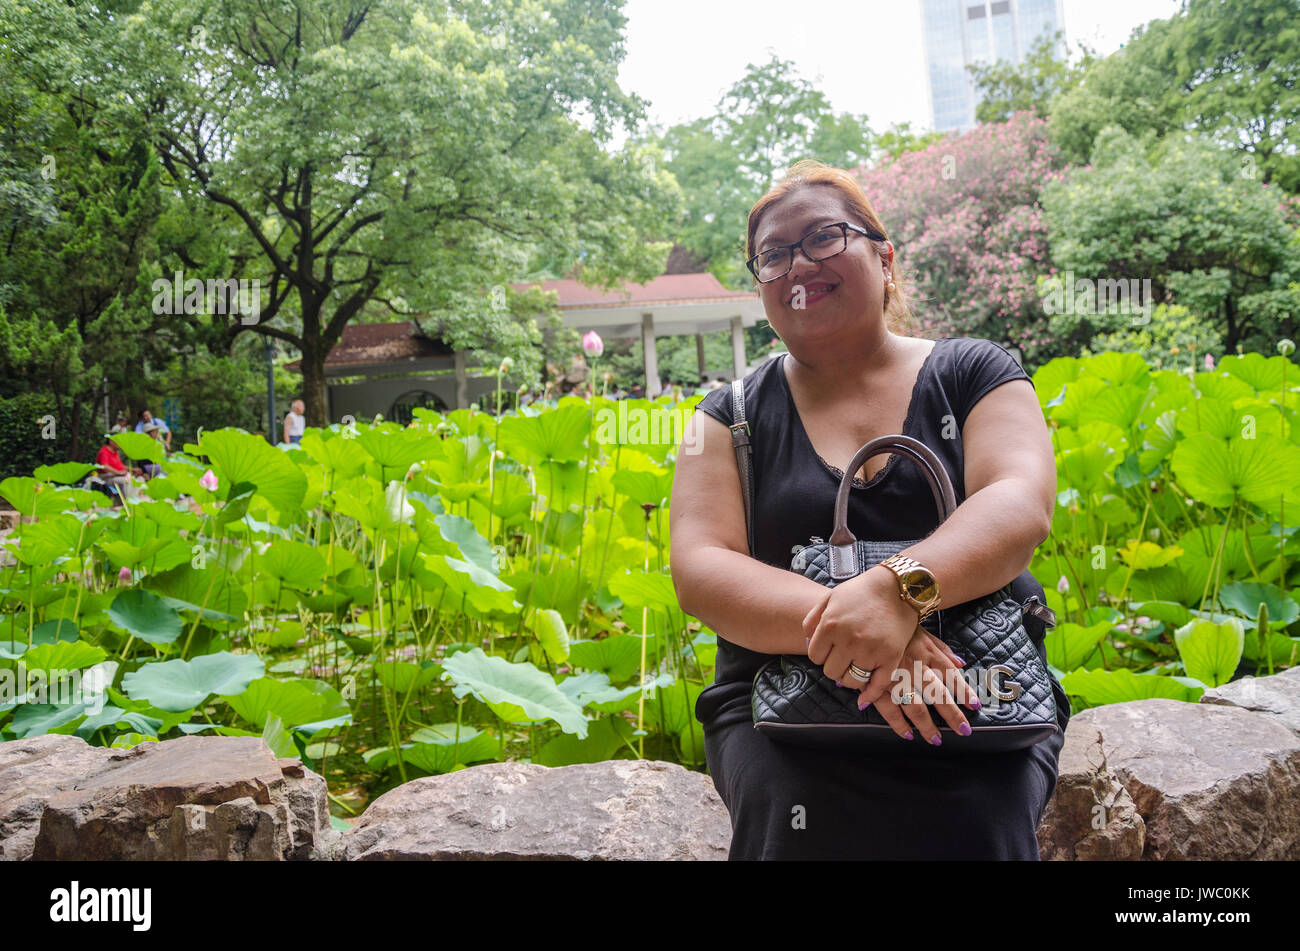 A lady sits and poses for a portrait in front of a pool of lotus flowers in People's Park in Shanghai, China. - Stock Image